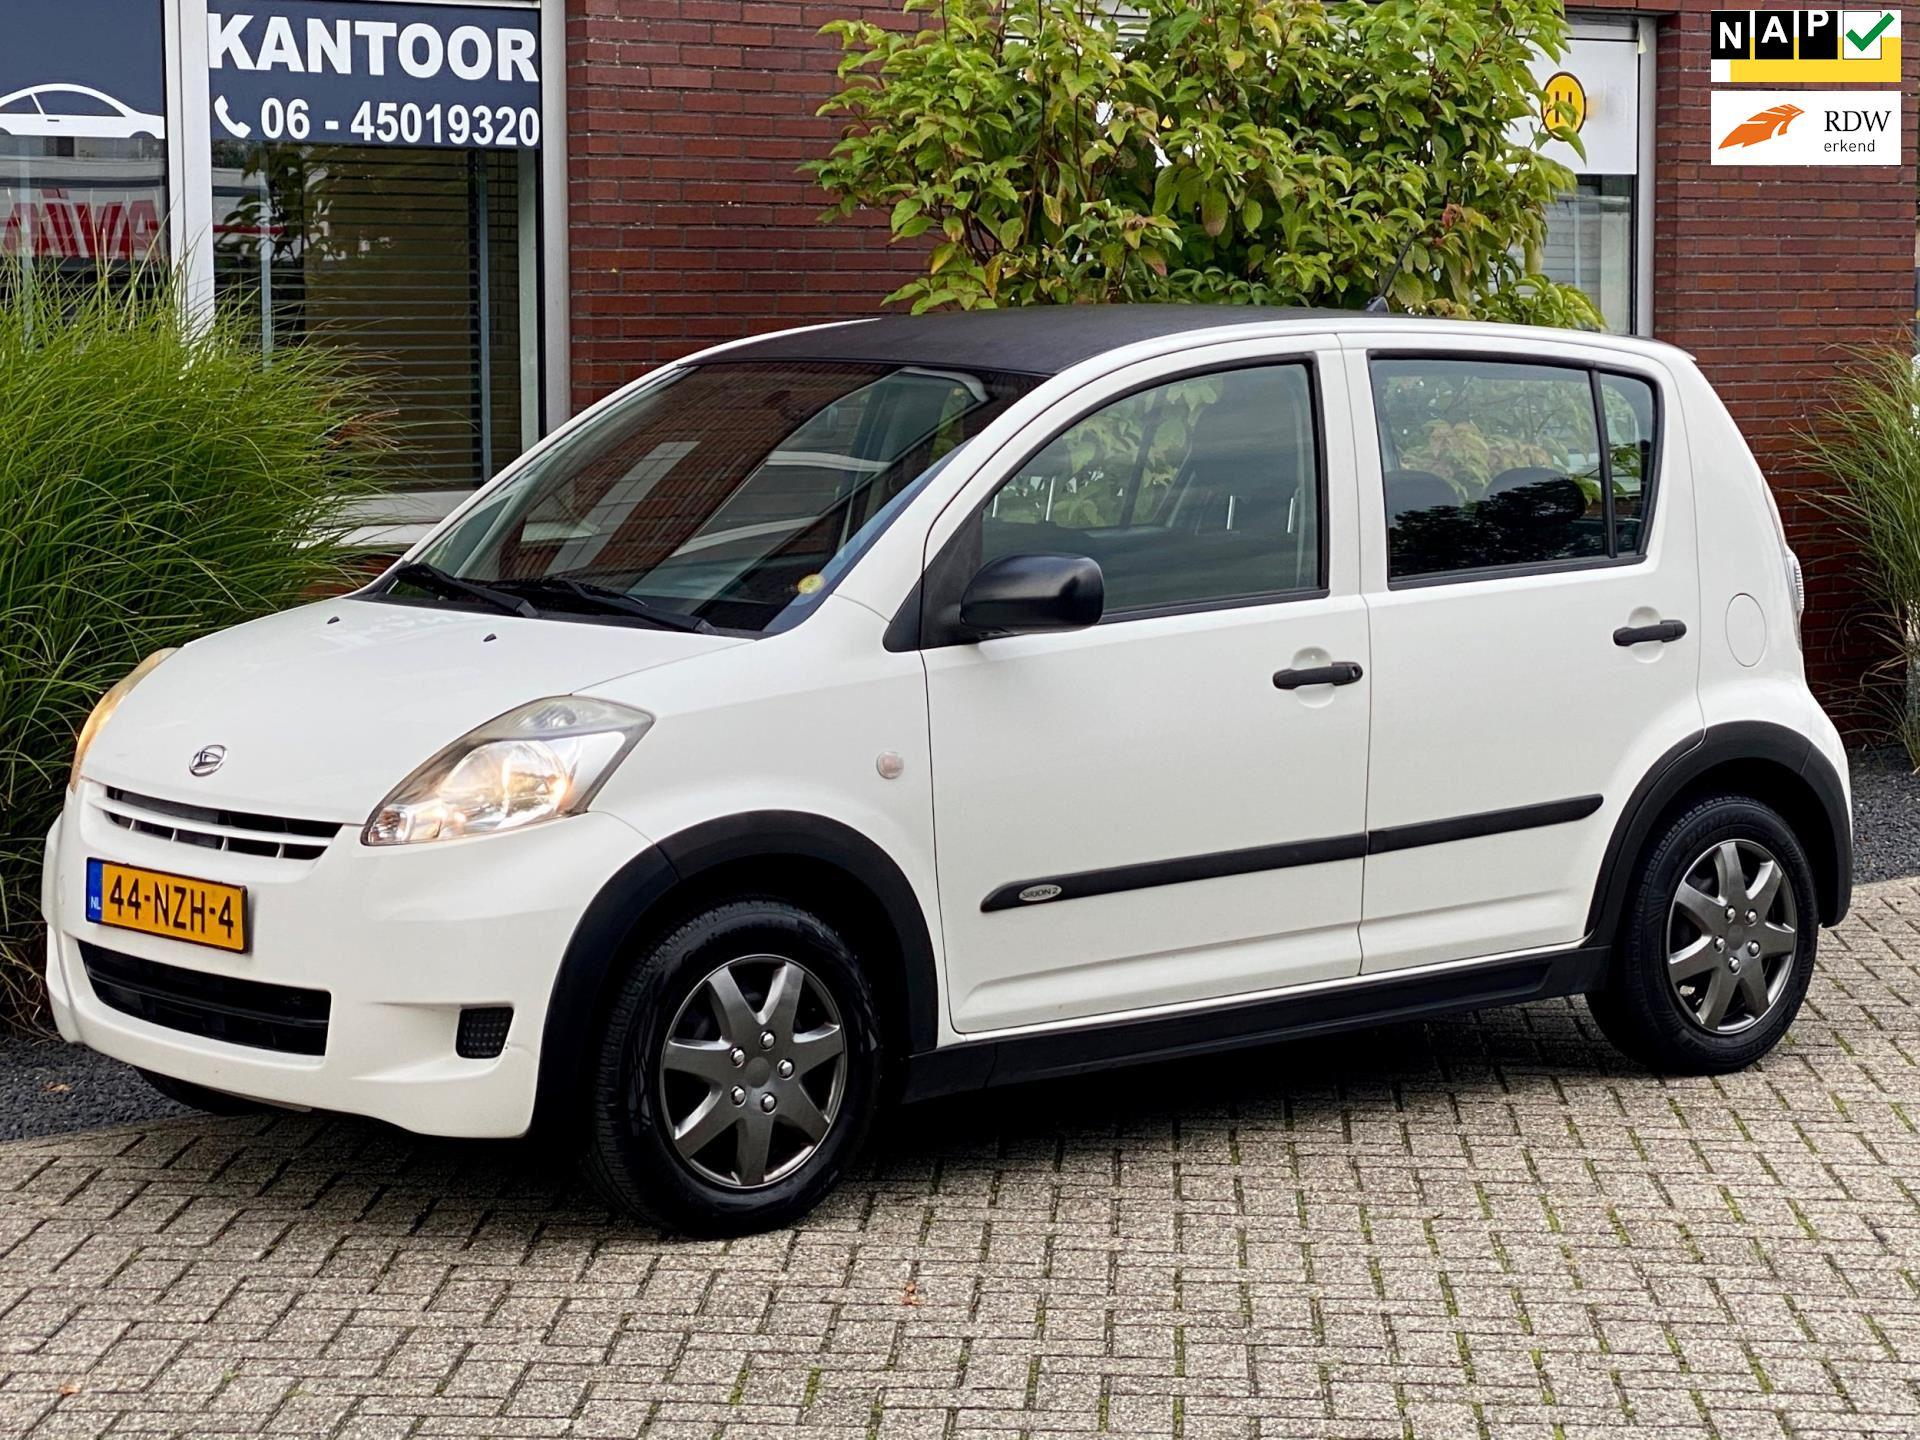 Daihatsu Sirion 2 occasion - Van Loon Automotive